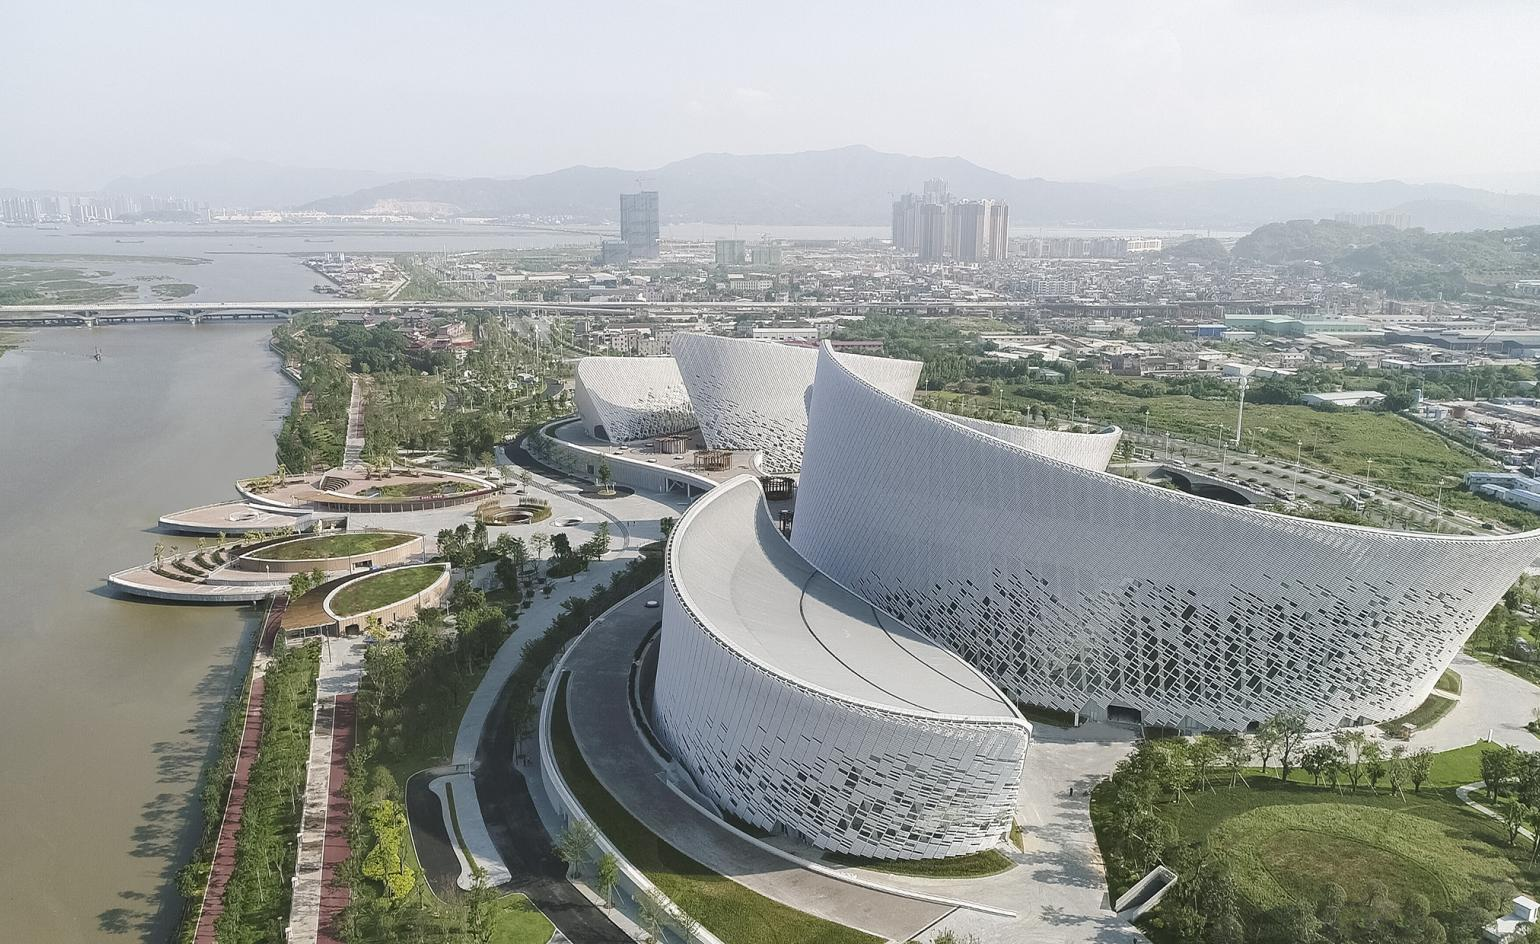 Fuzhou's art centre by PES Architects takes its cues from jasmine blossom